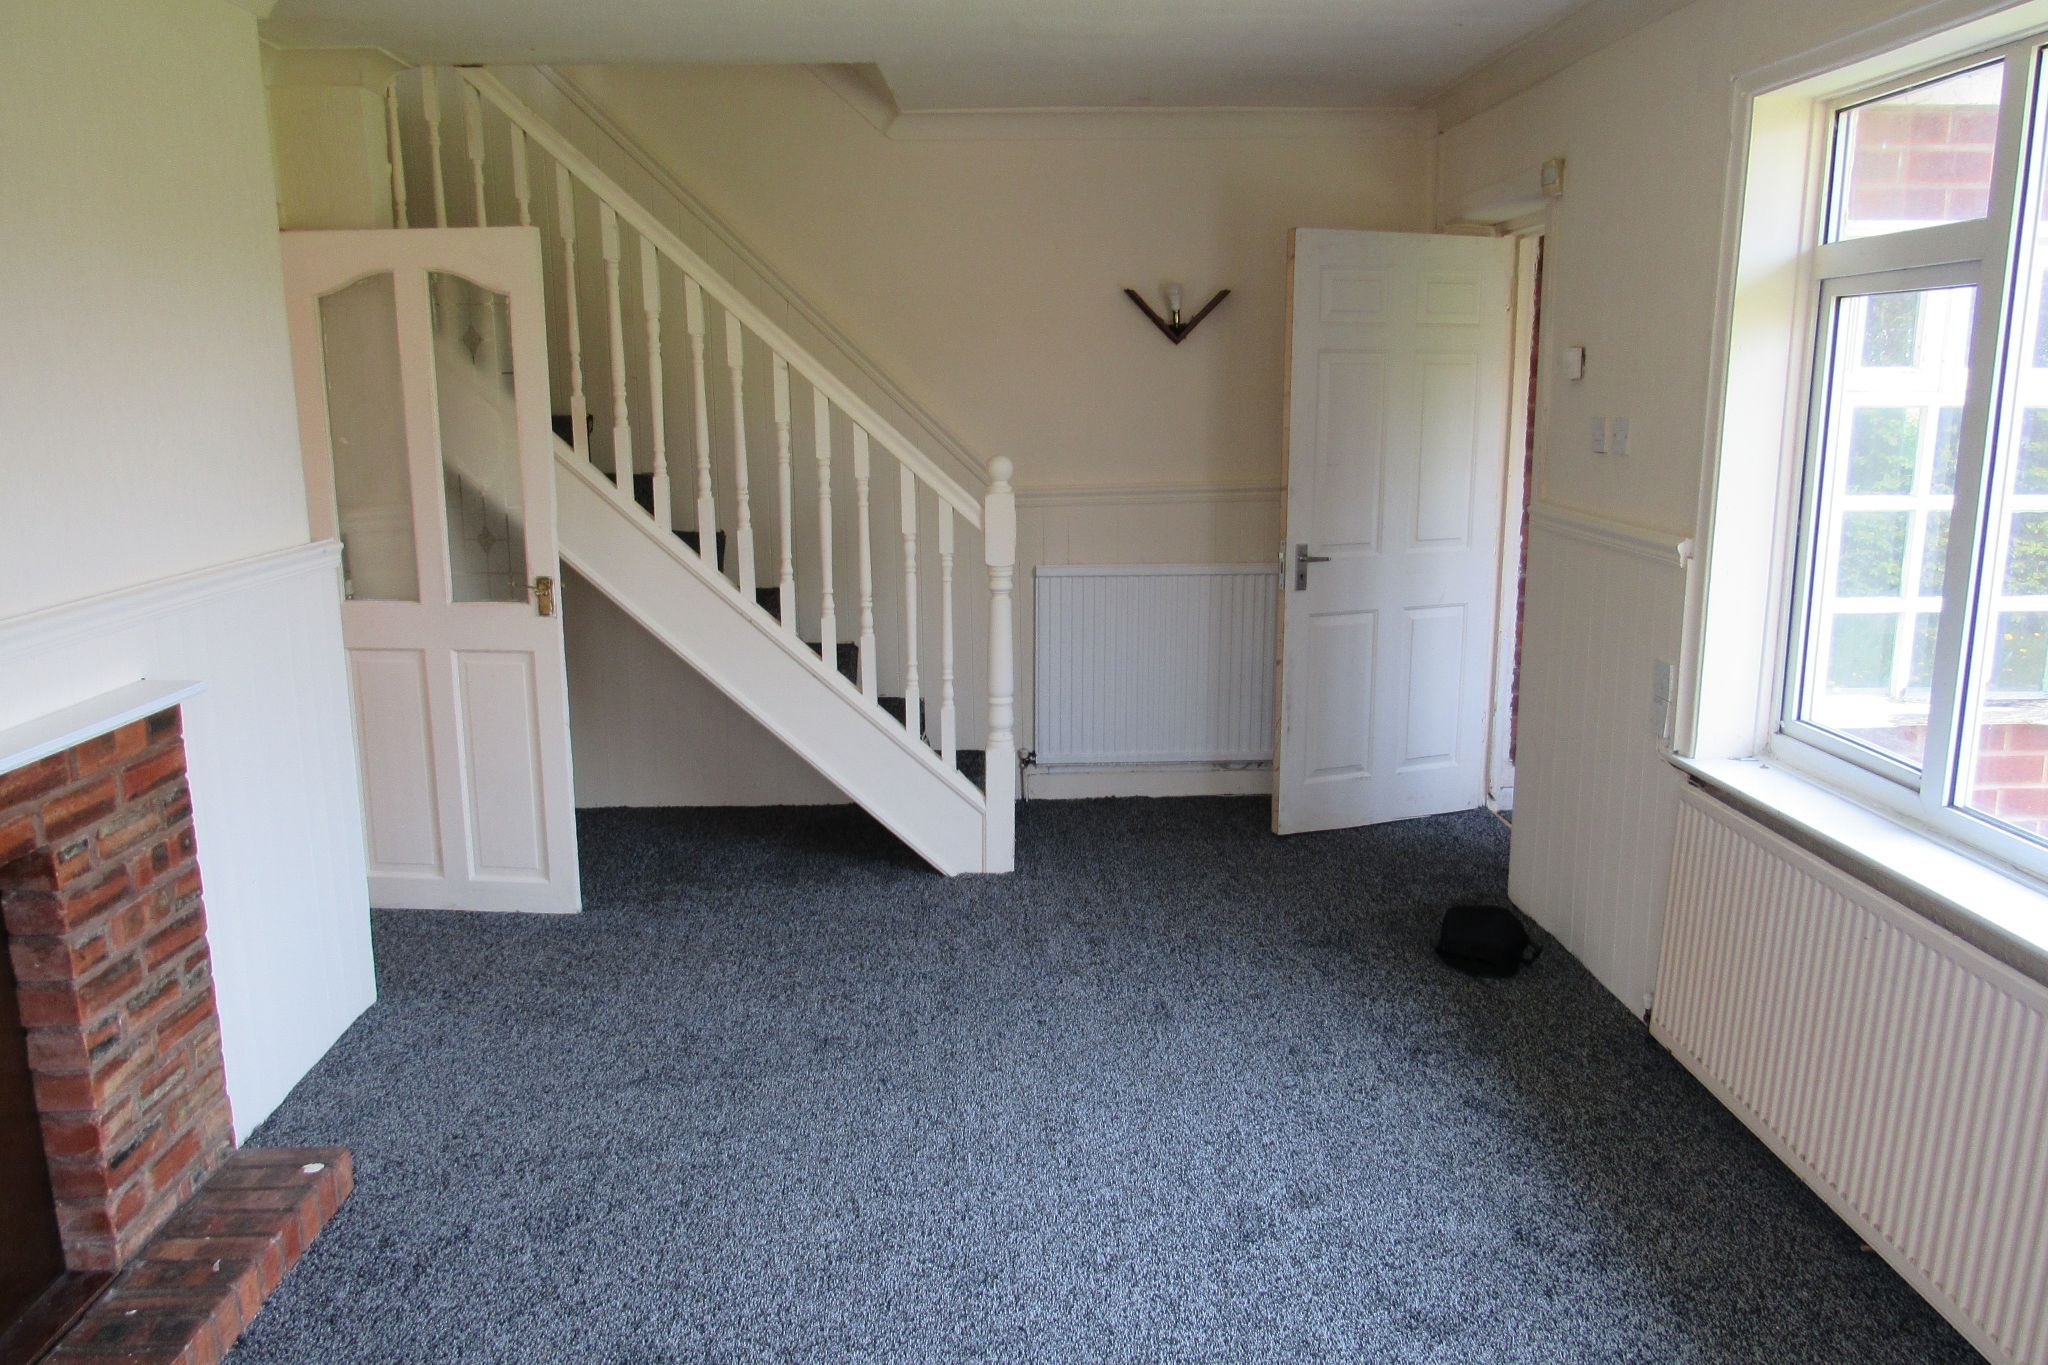 3 bedroom semi-detached house SSTC in Manchester - Photograph 8.